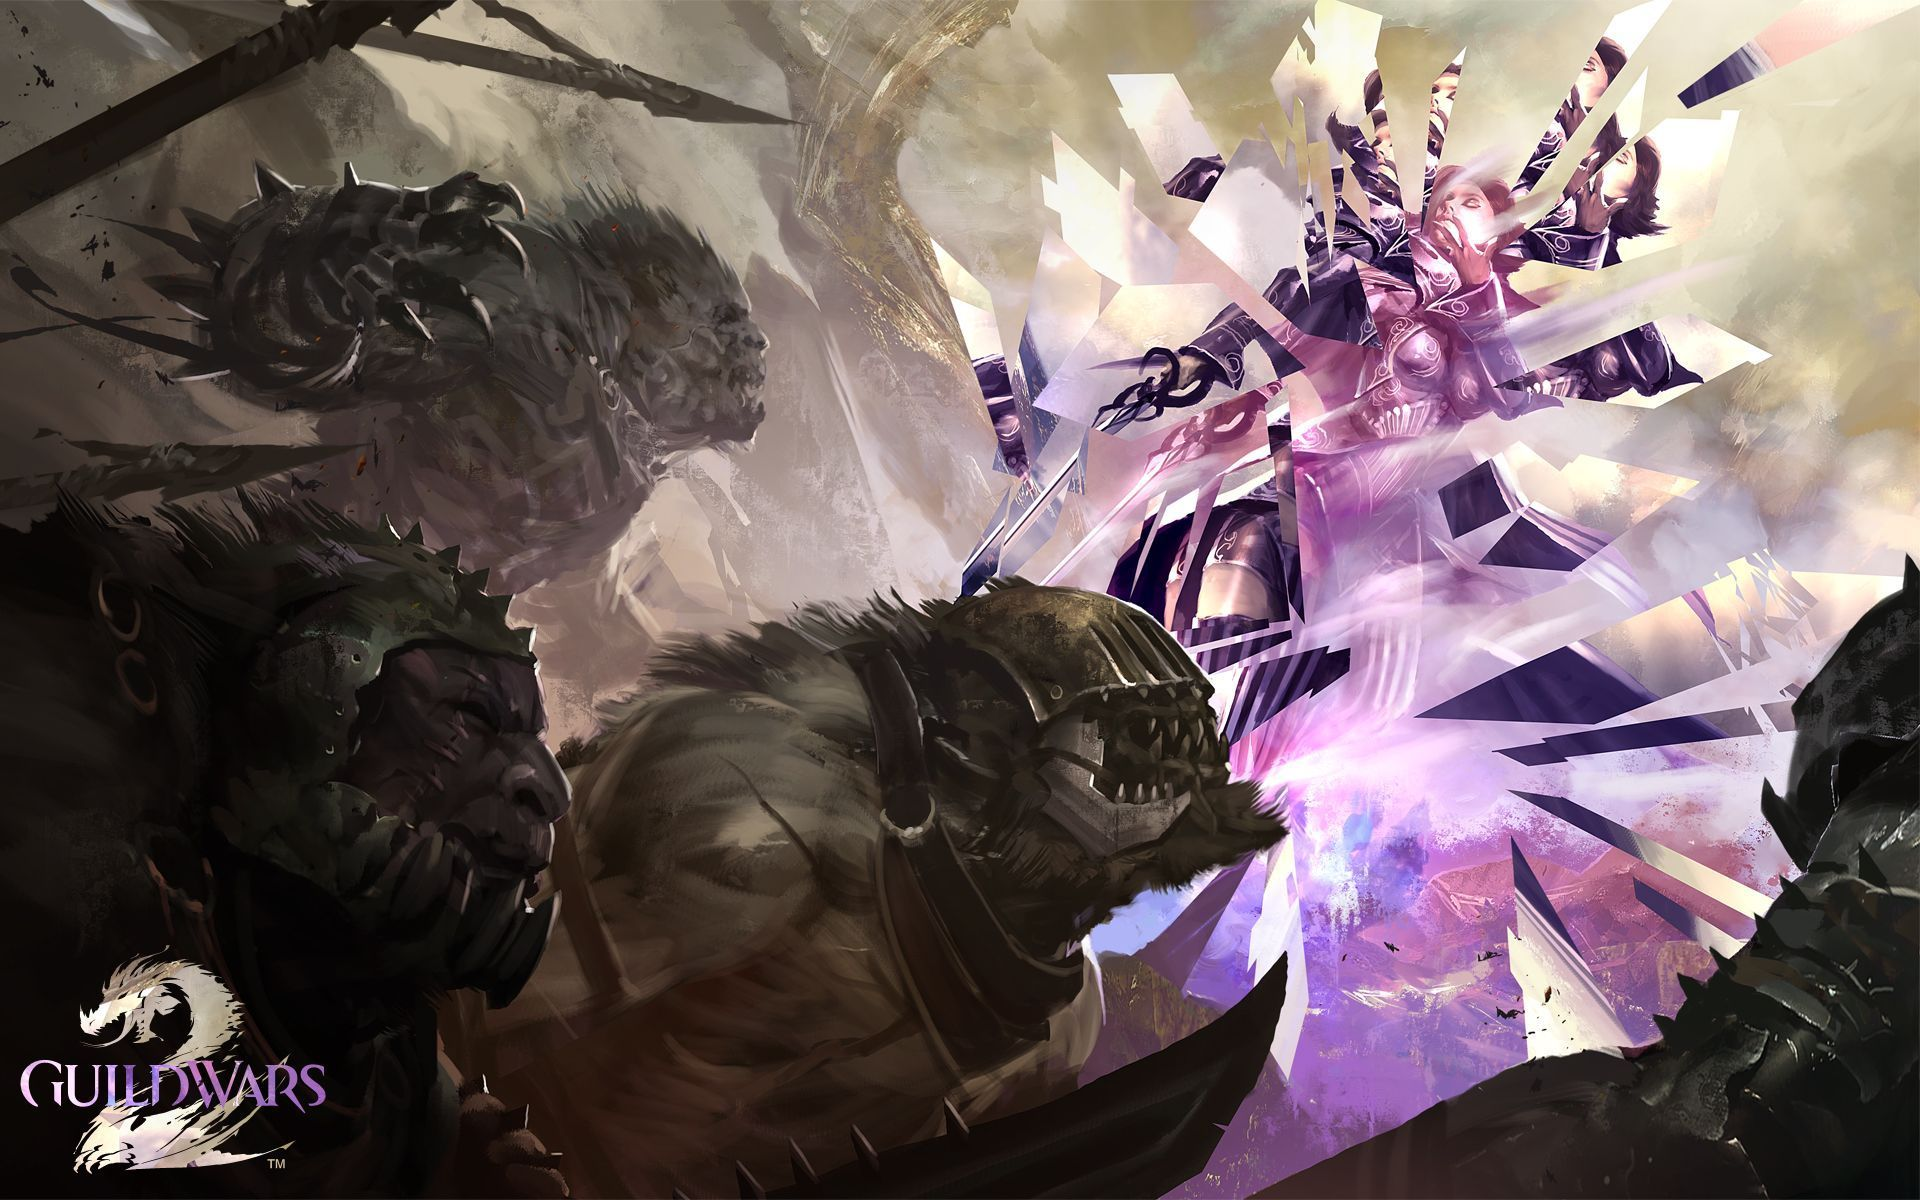 Guild Wars 2 Wallpapers Top Free Guild Wars 2 Backgrounds